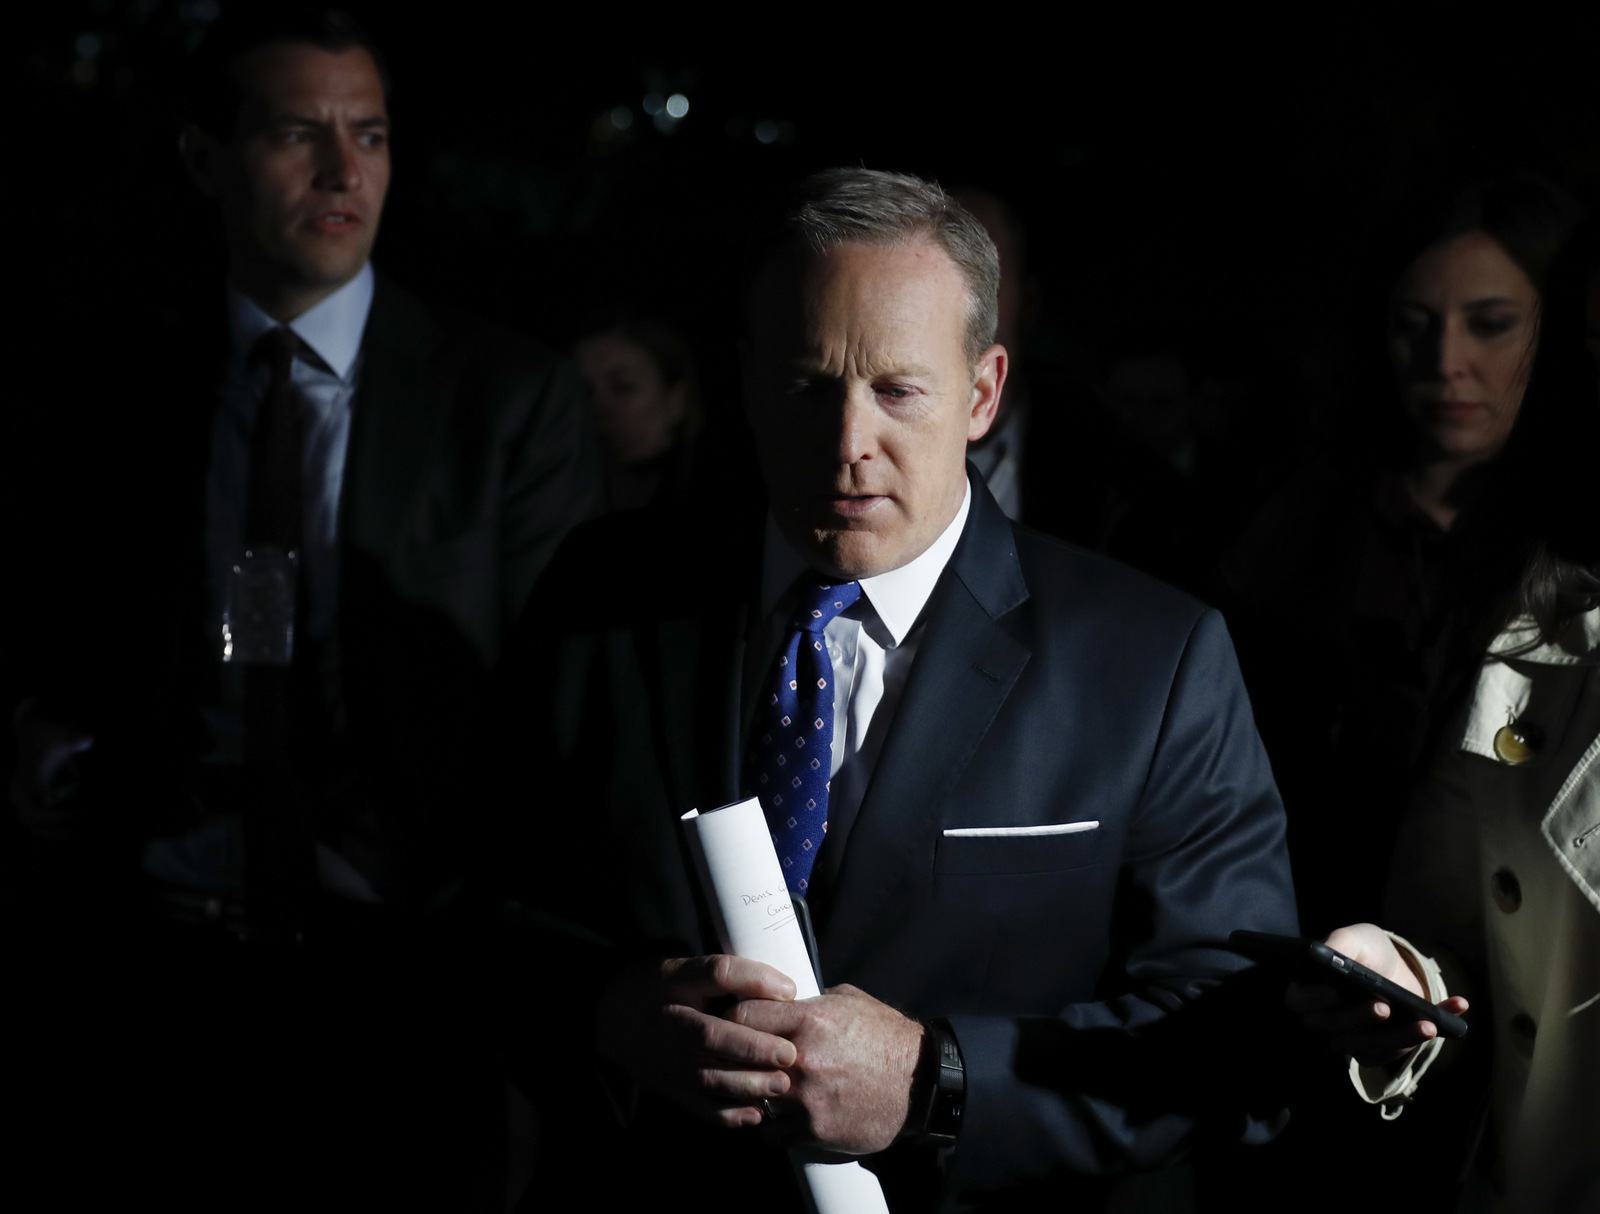 White House press secretary Sean Spicer talks to media as he walks to the West Wing of the White House, in Washington, May 9, 2017. (AP/Carolyn Kaster)